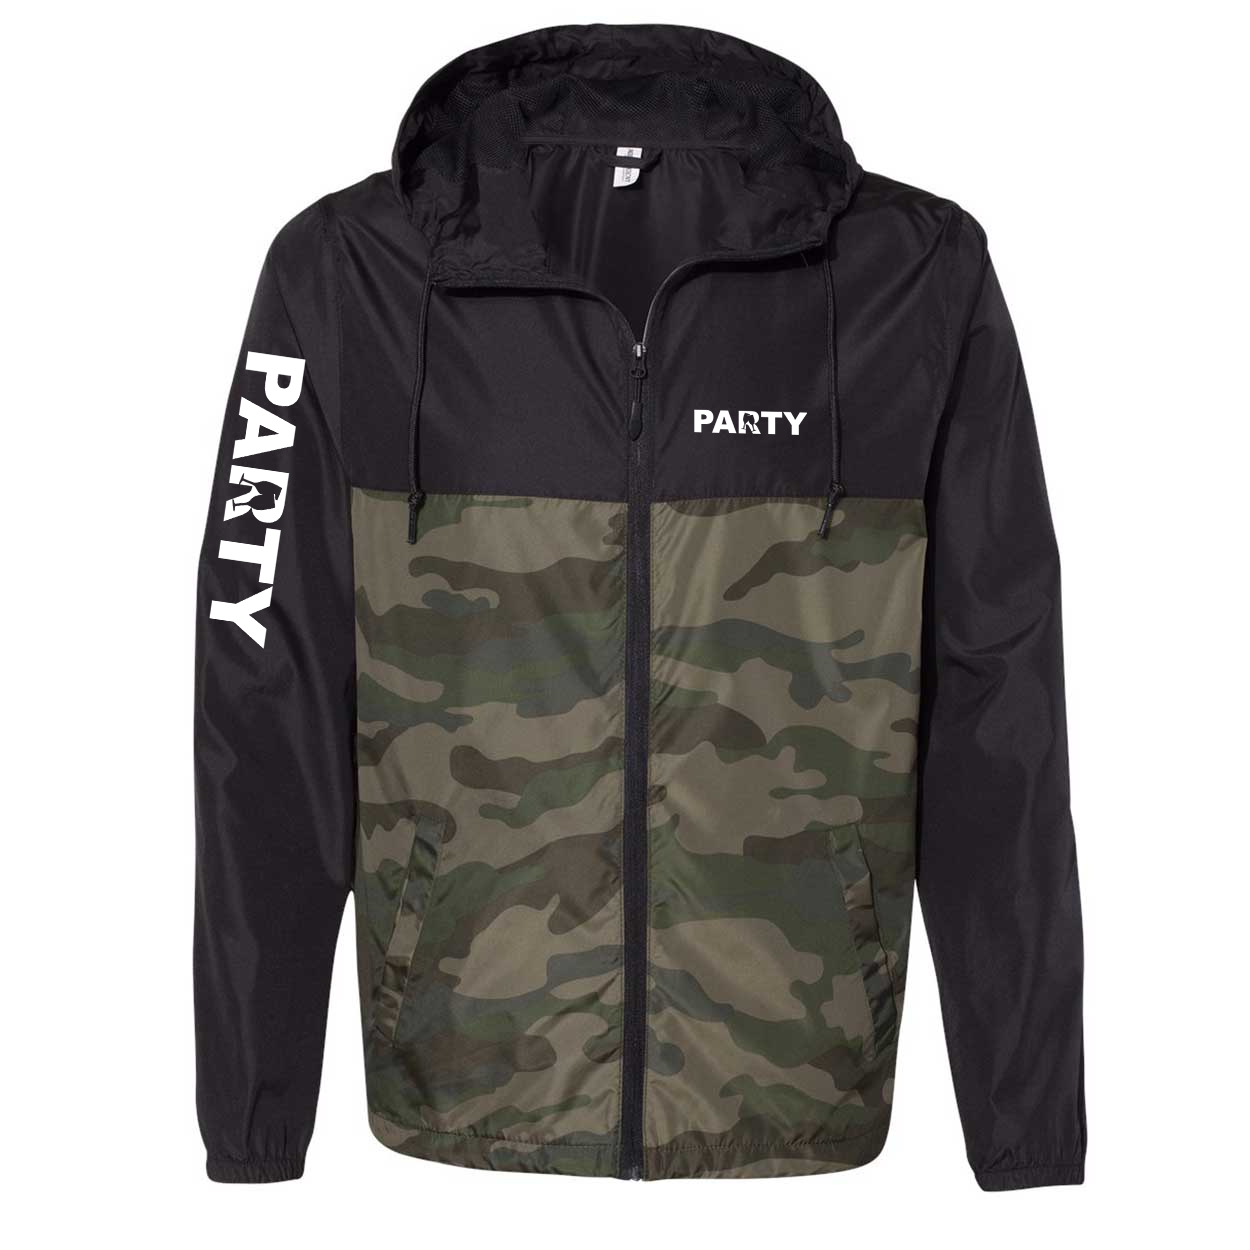 Party Cheers Logo Classic Lightweight Windbreaker Black/Forest Camo (White Logo)